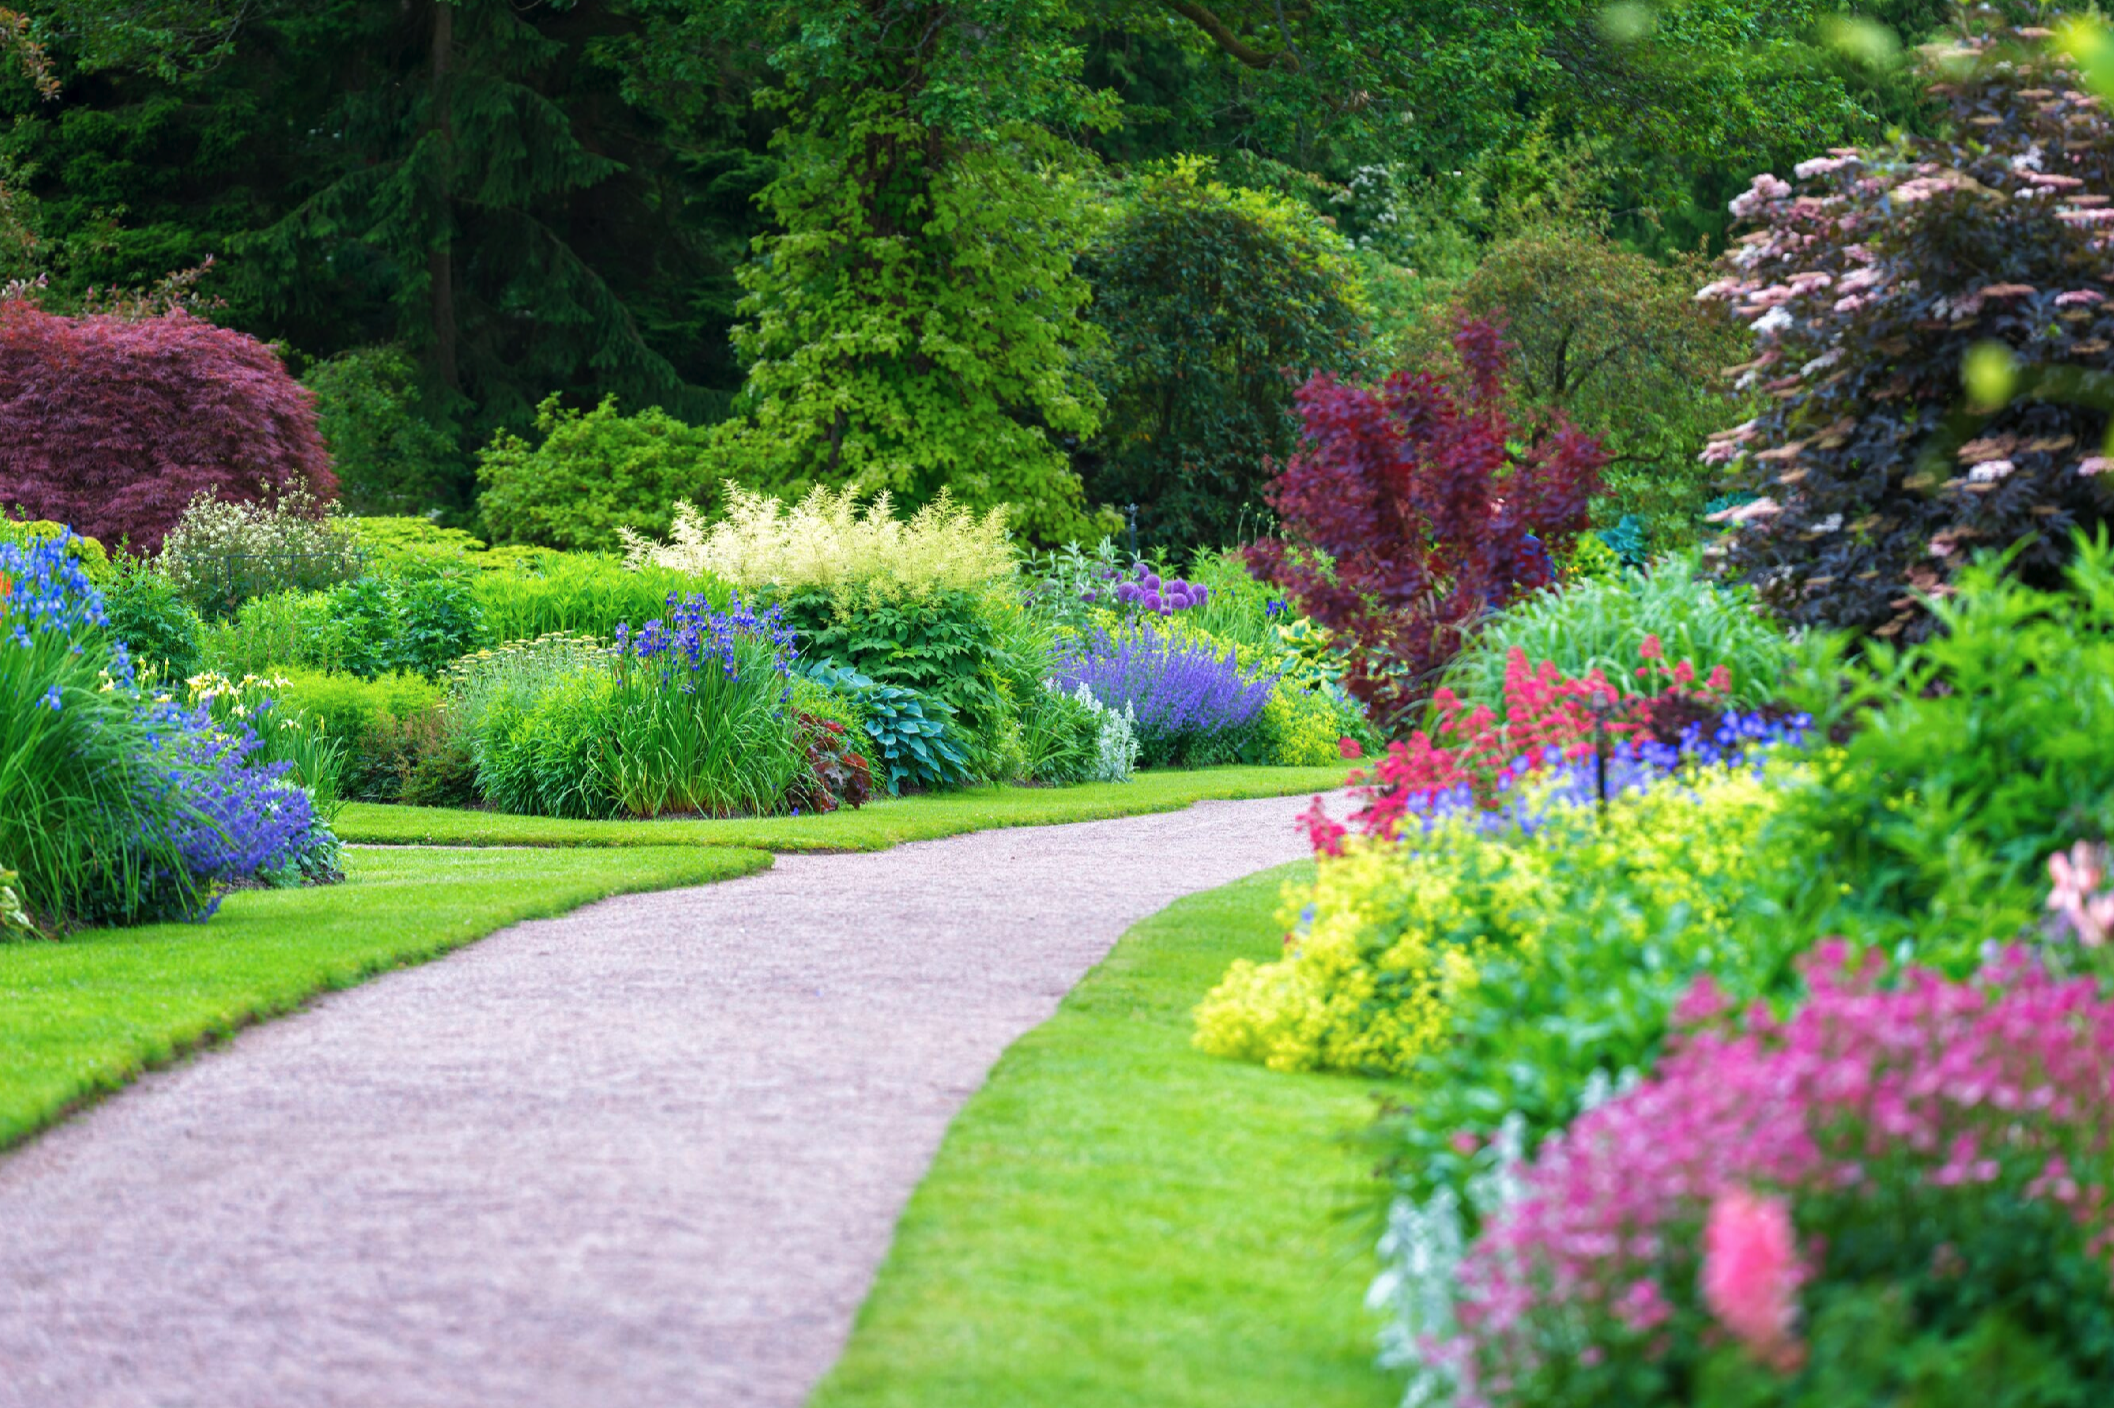 SHRUBS • TREES • PERENNIALS • ANNUALS